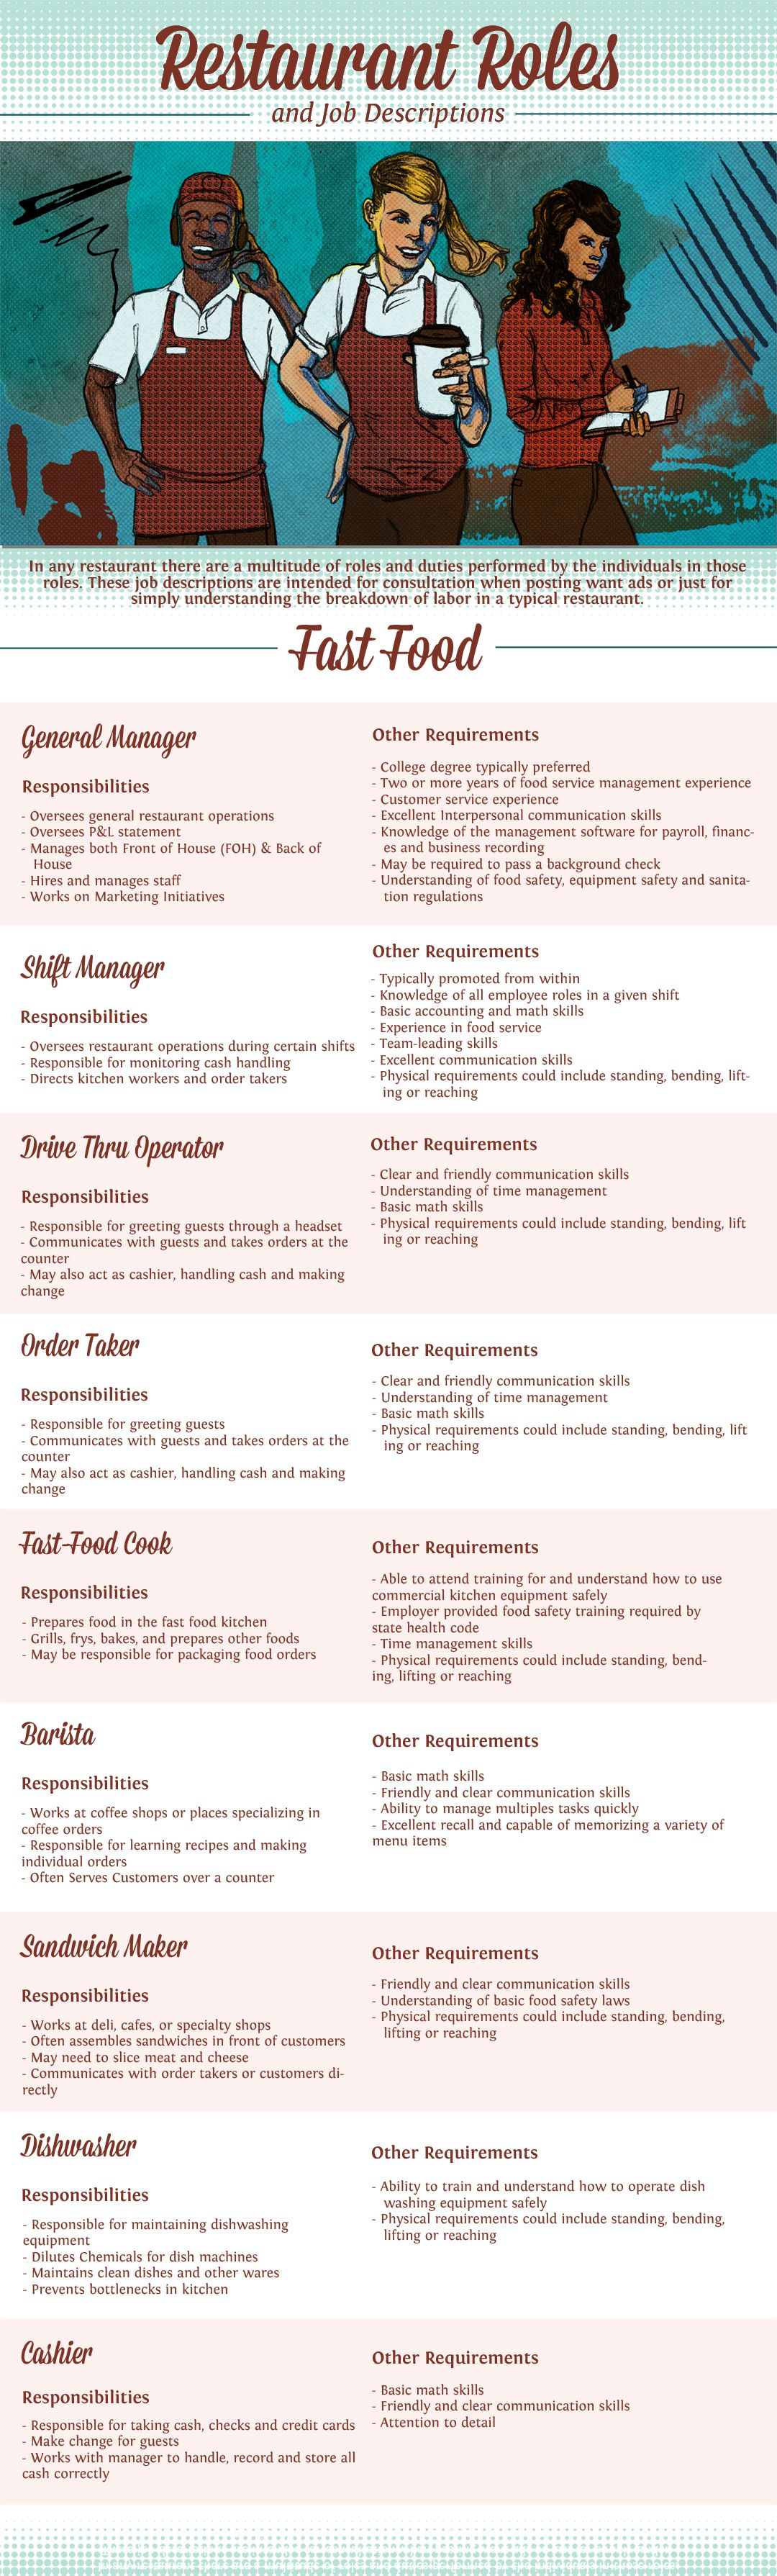 fast food restaurant job descriptions infographic - Fast Food Job Description For Resume